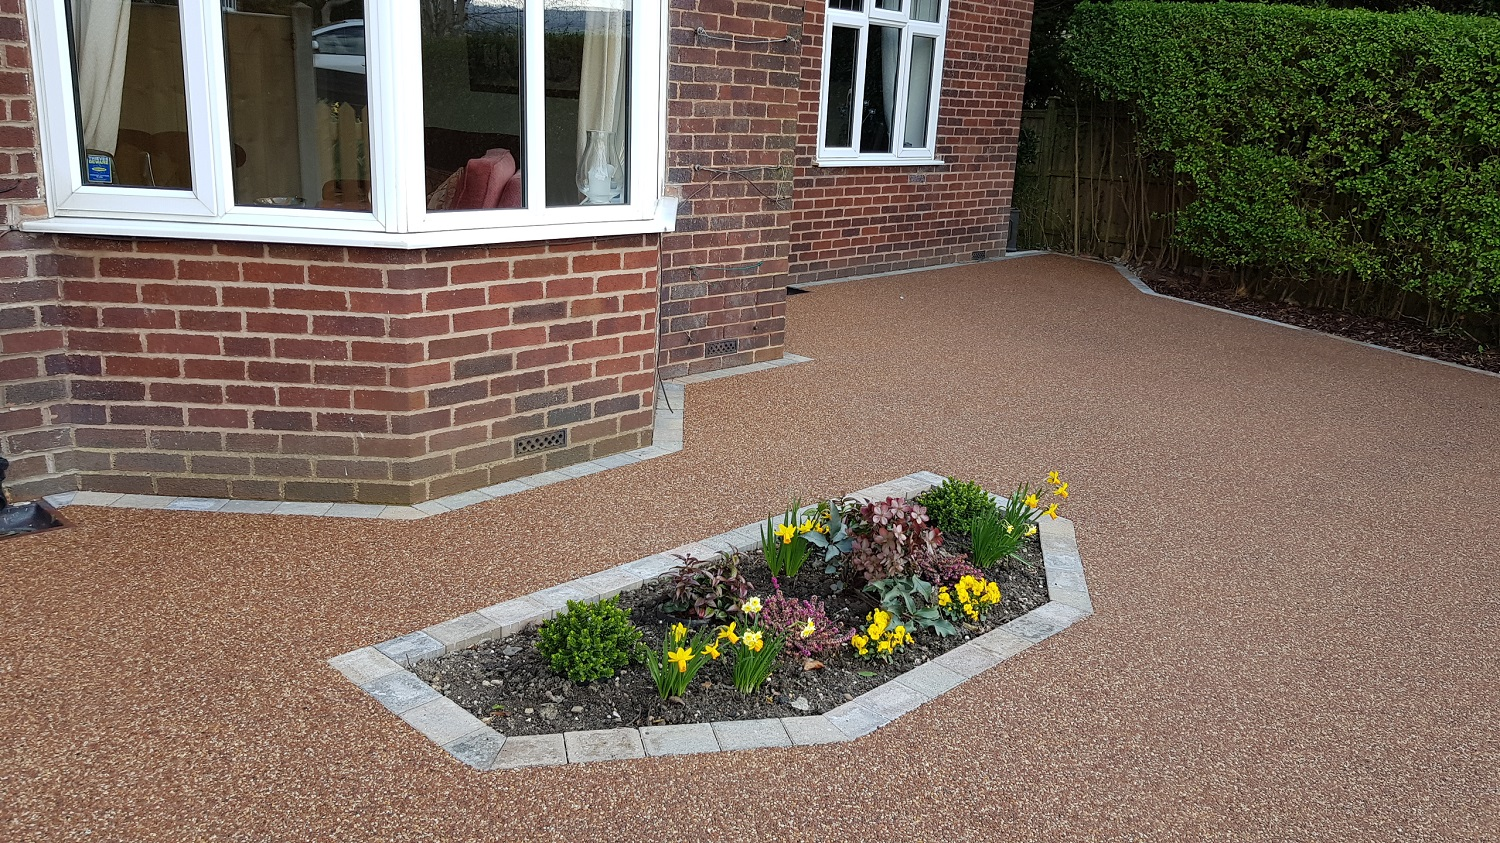 R18 - Chilli Chocolate Mix (2)  Resin Bound Driveway Surfacing at Brookside  in Chesterfield with Bl